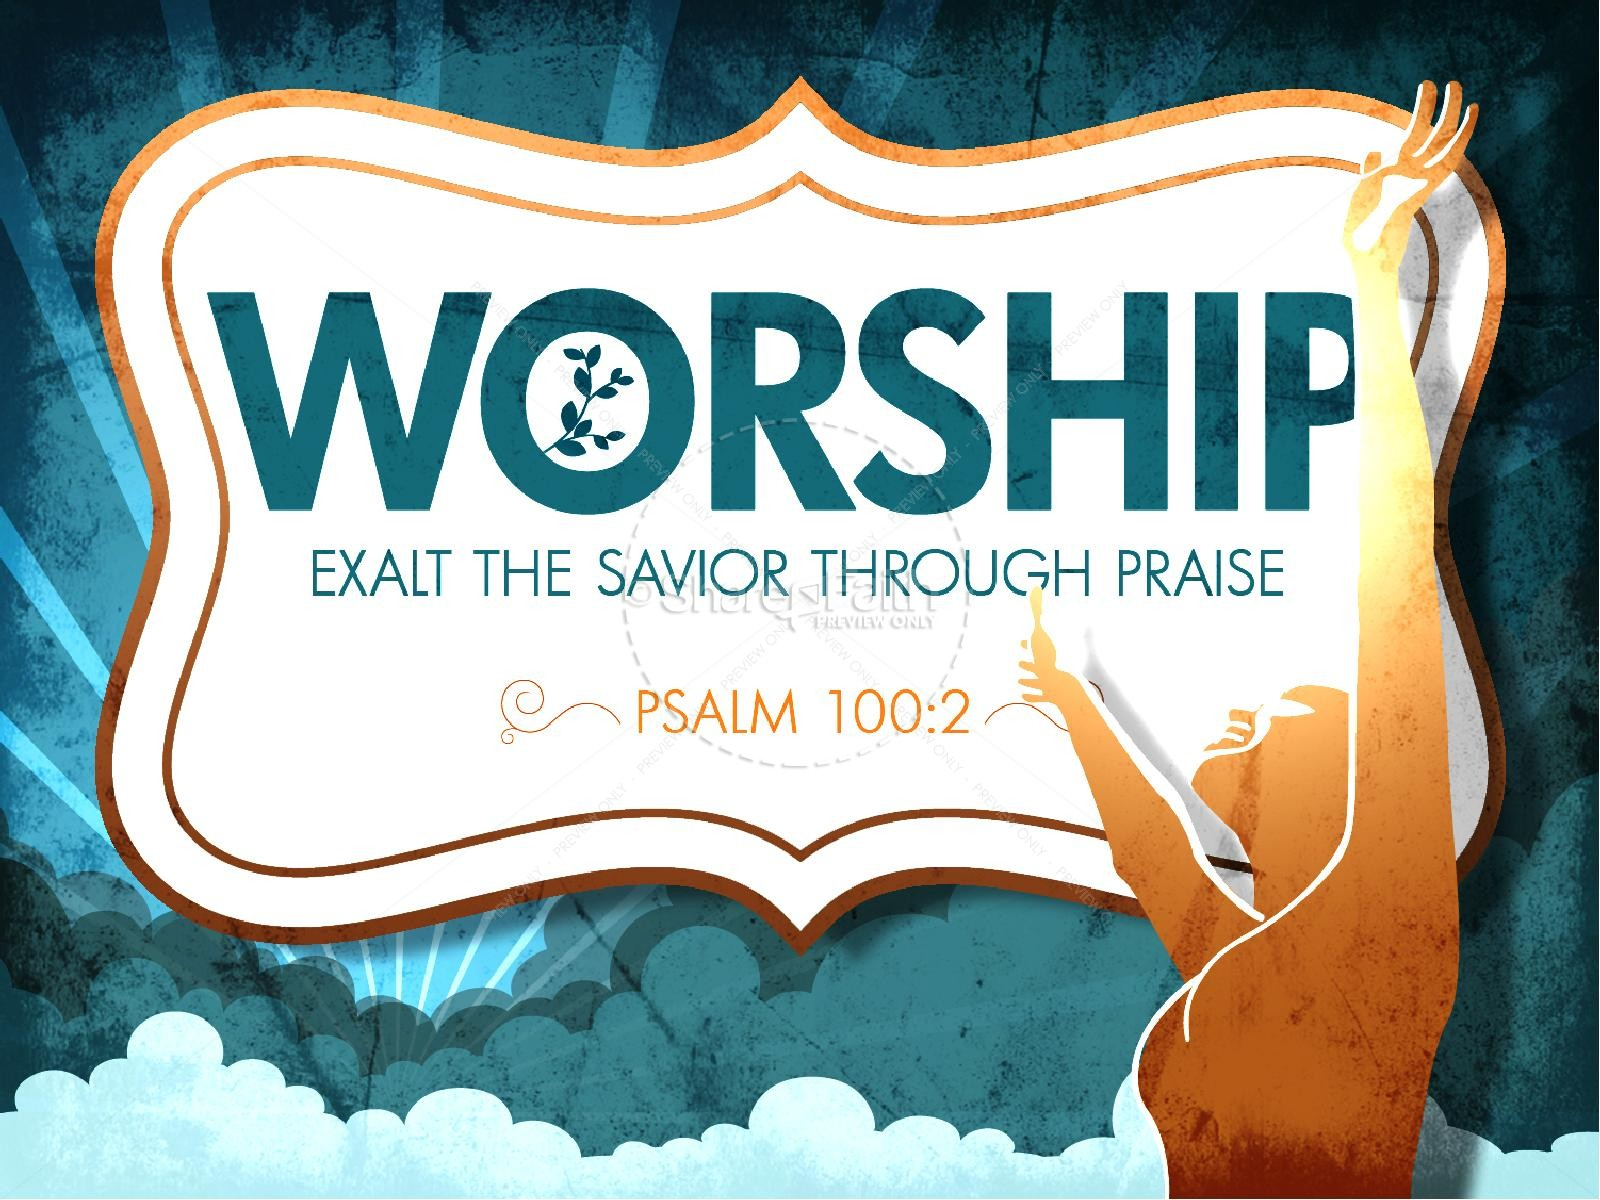 Worship Powerpoint Church Template | Powerpoint Sermons With Regard To Praise And Worship Powerpoint Templates